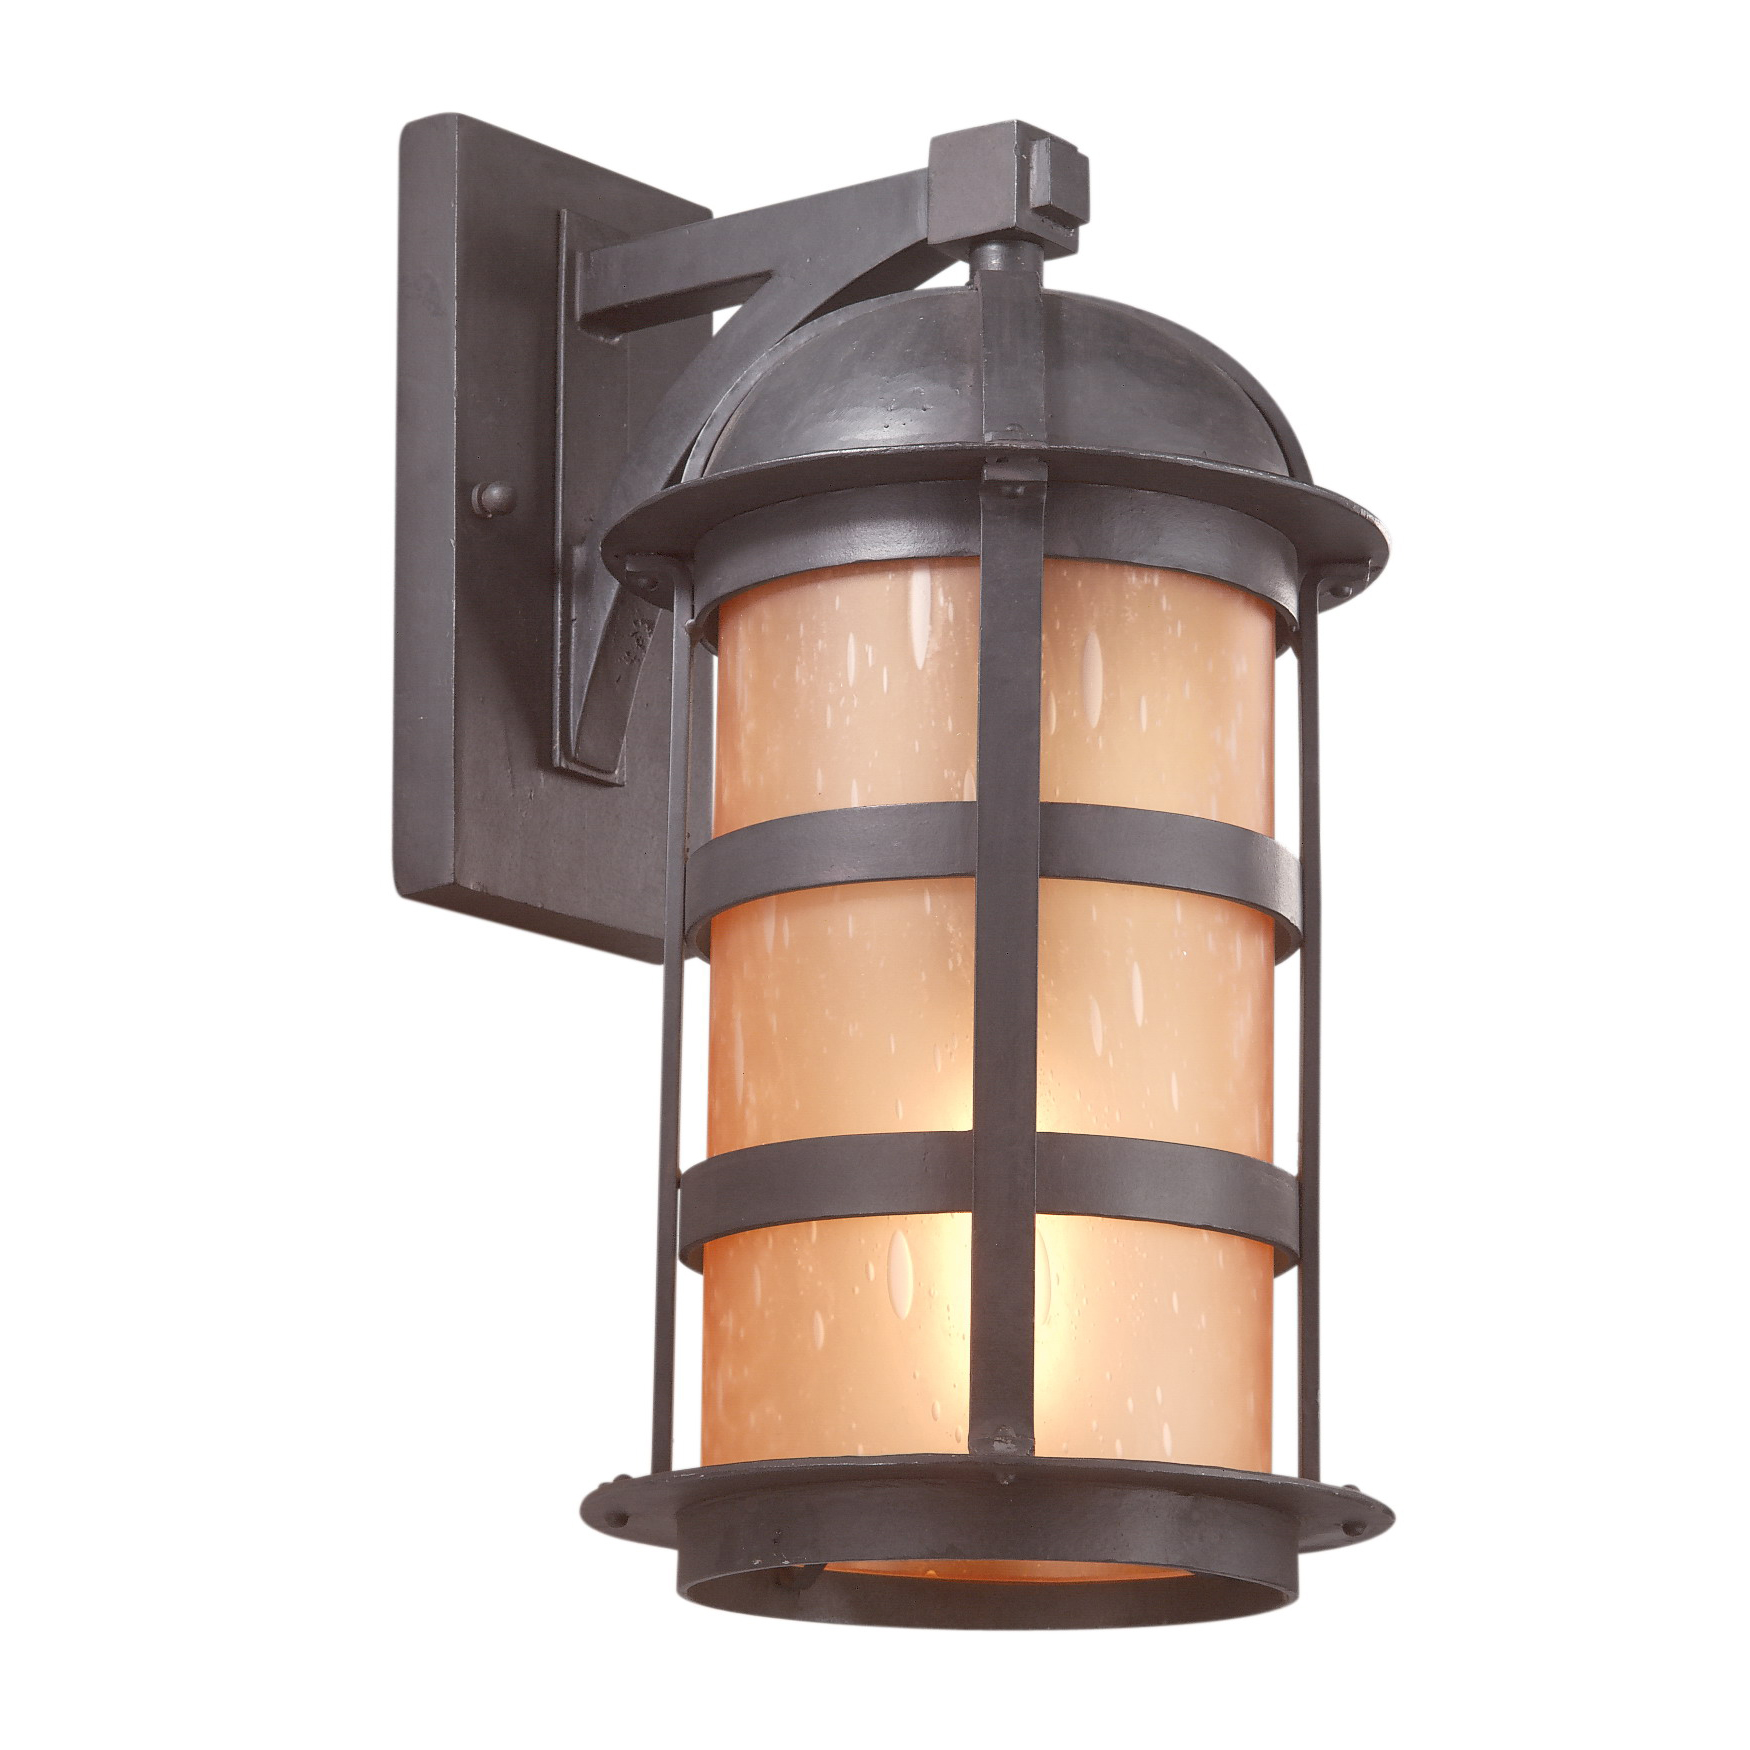 Tech Lighting Aspen: Aspen Outdoor Wall Sconce By Troy Lighting